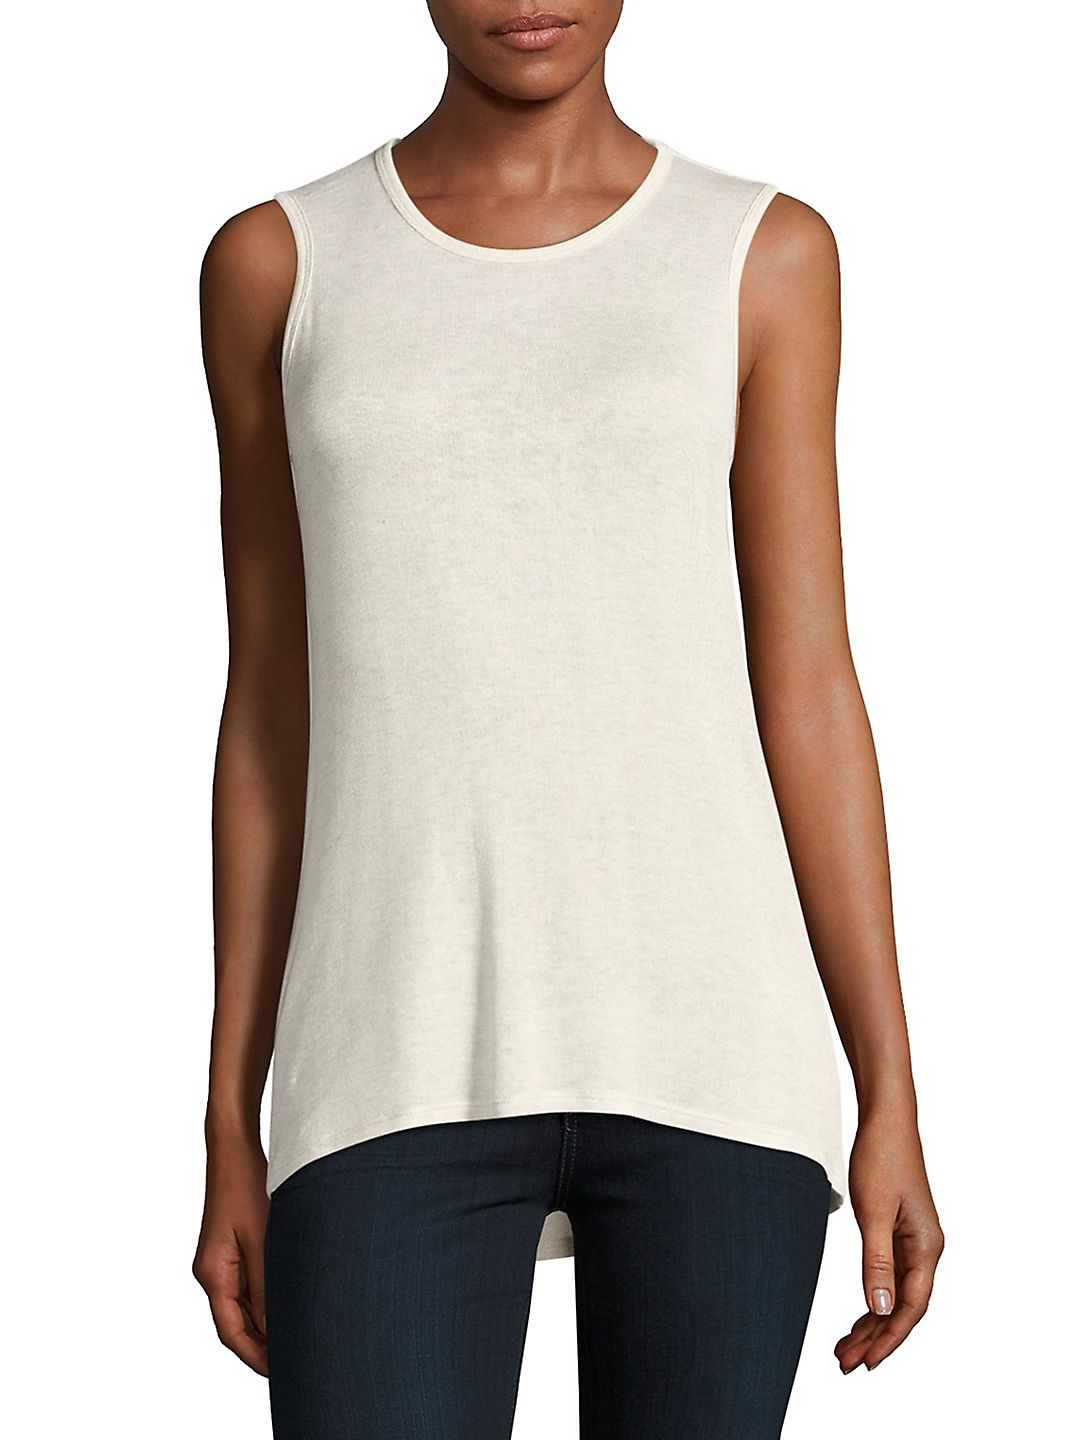 Cutout Back Sleeveless Top